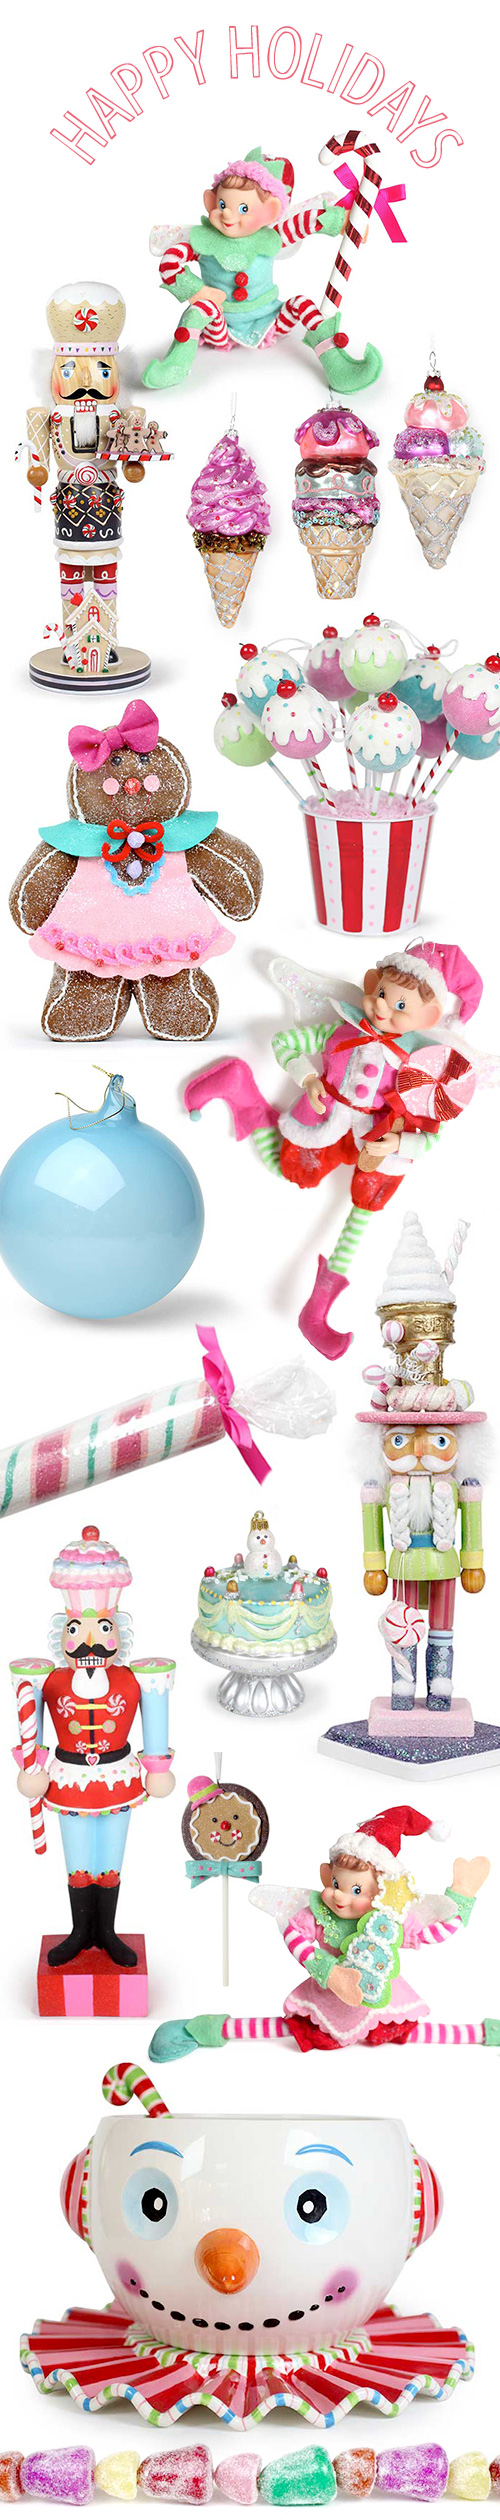 Holiday Decorations from Tinsel and Twirl